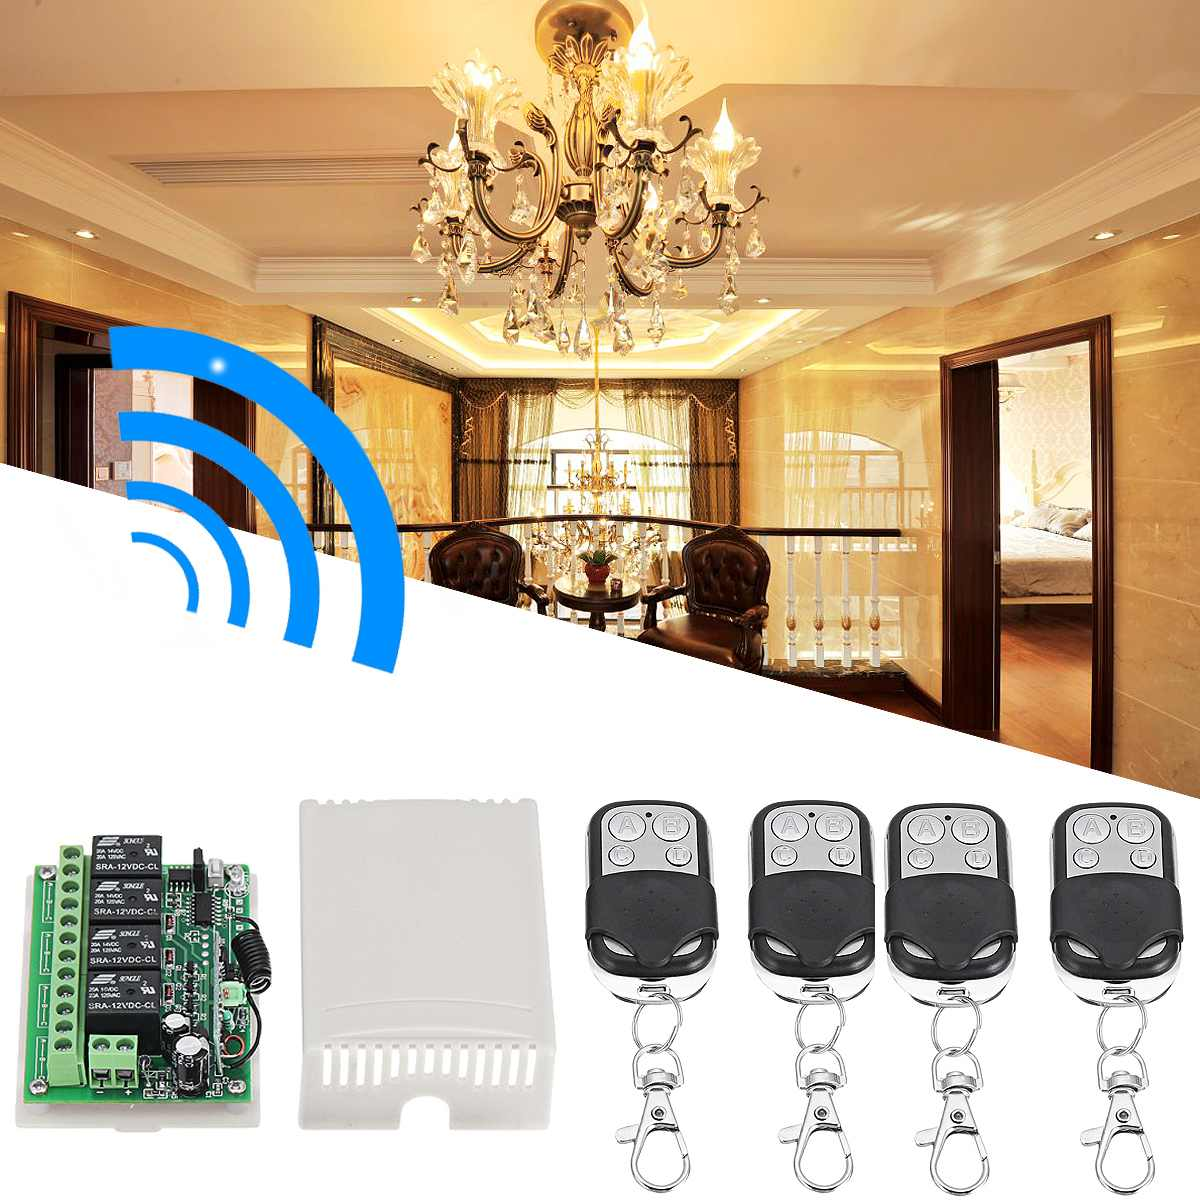 Mini Wireless RF Remote Control Light Switch  Relay Output Radio DC 12V 4CH Channel 433MHz Receiver Module +TransmitterMini Wireless RF Remote Control Light Switch  Relay Output Radio DC 12V 4CH Channel 433MHz Receiver Module +Transmitter